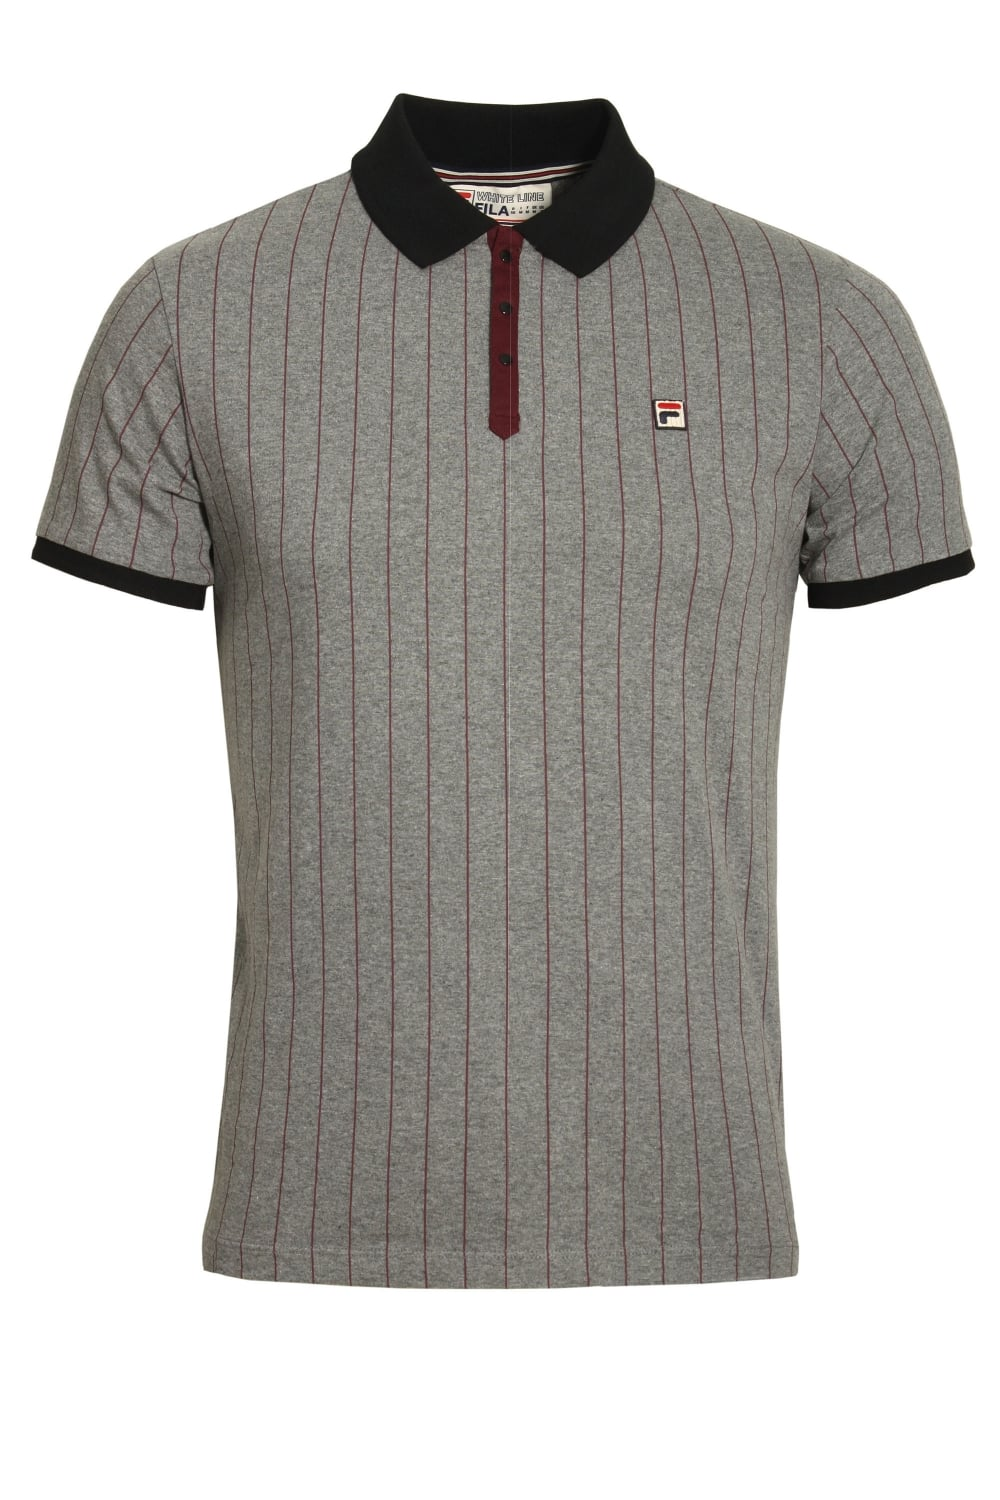 FILA VINTAGE BB1 Polo Shirt | Grey Twist